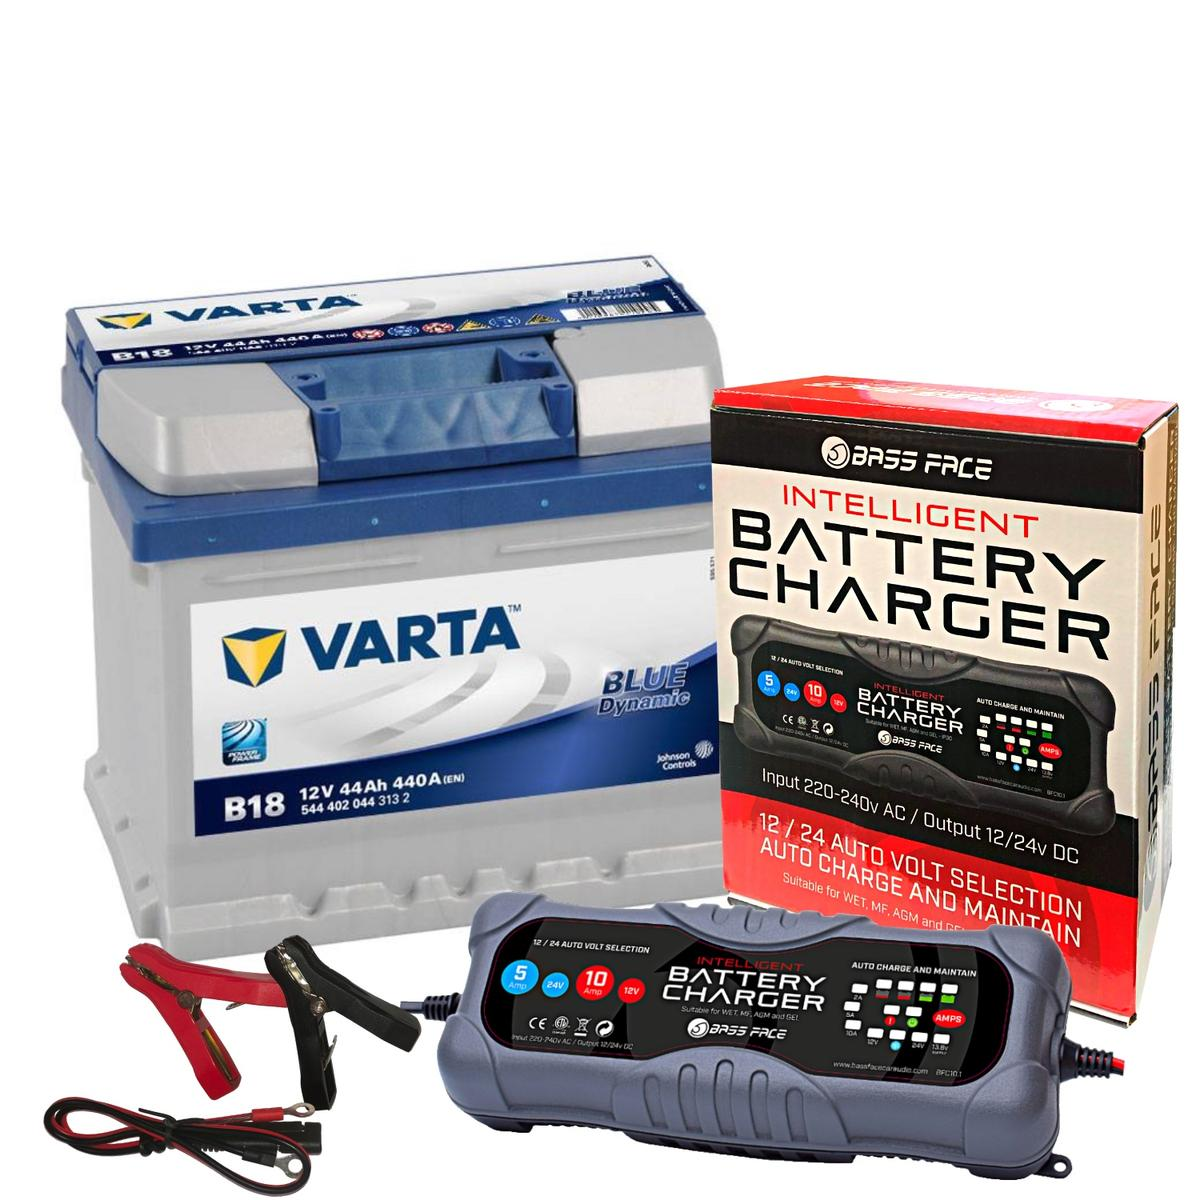 Varta B18 Ford VW Seat Car Battery 12v 4 Year 063 44Ah 440CCA W/ 10 Amp Charger